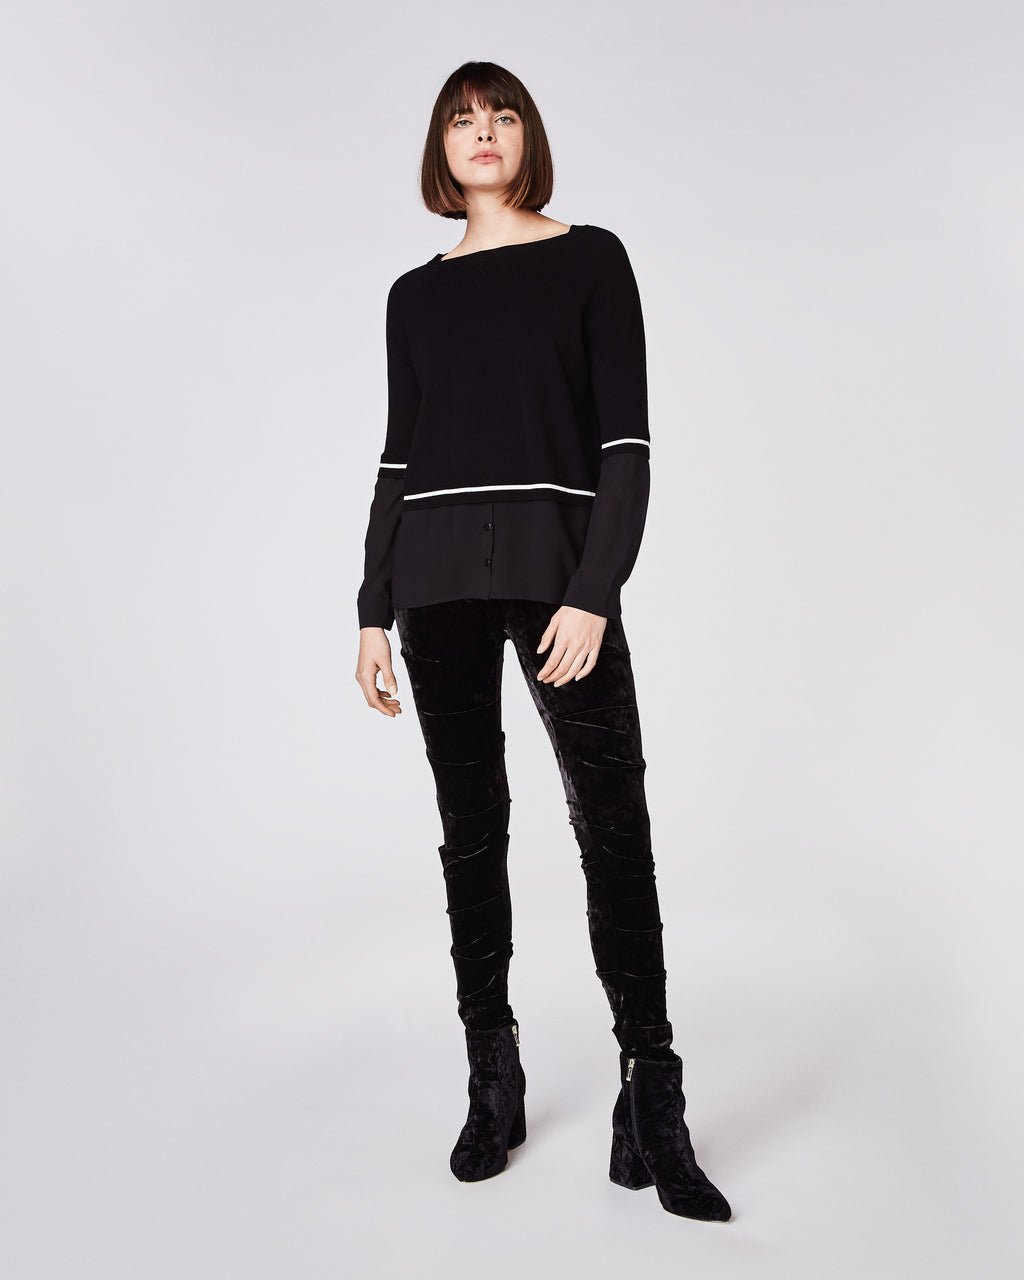 BH10413 - KNIT TO WOVEN BOAT NECK SWEATER - tops - knitwear - That faux layering look. This boat neck sweater is a mixed combo of knit and woven. Pair with jeans and booties for a cool go-to look. Final Sale